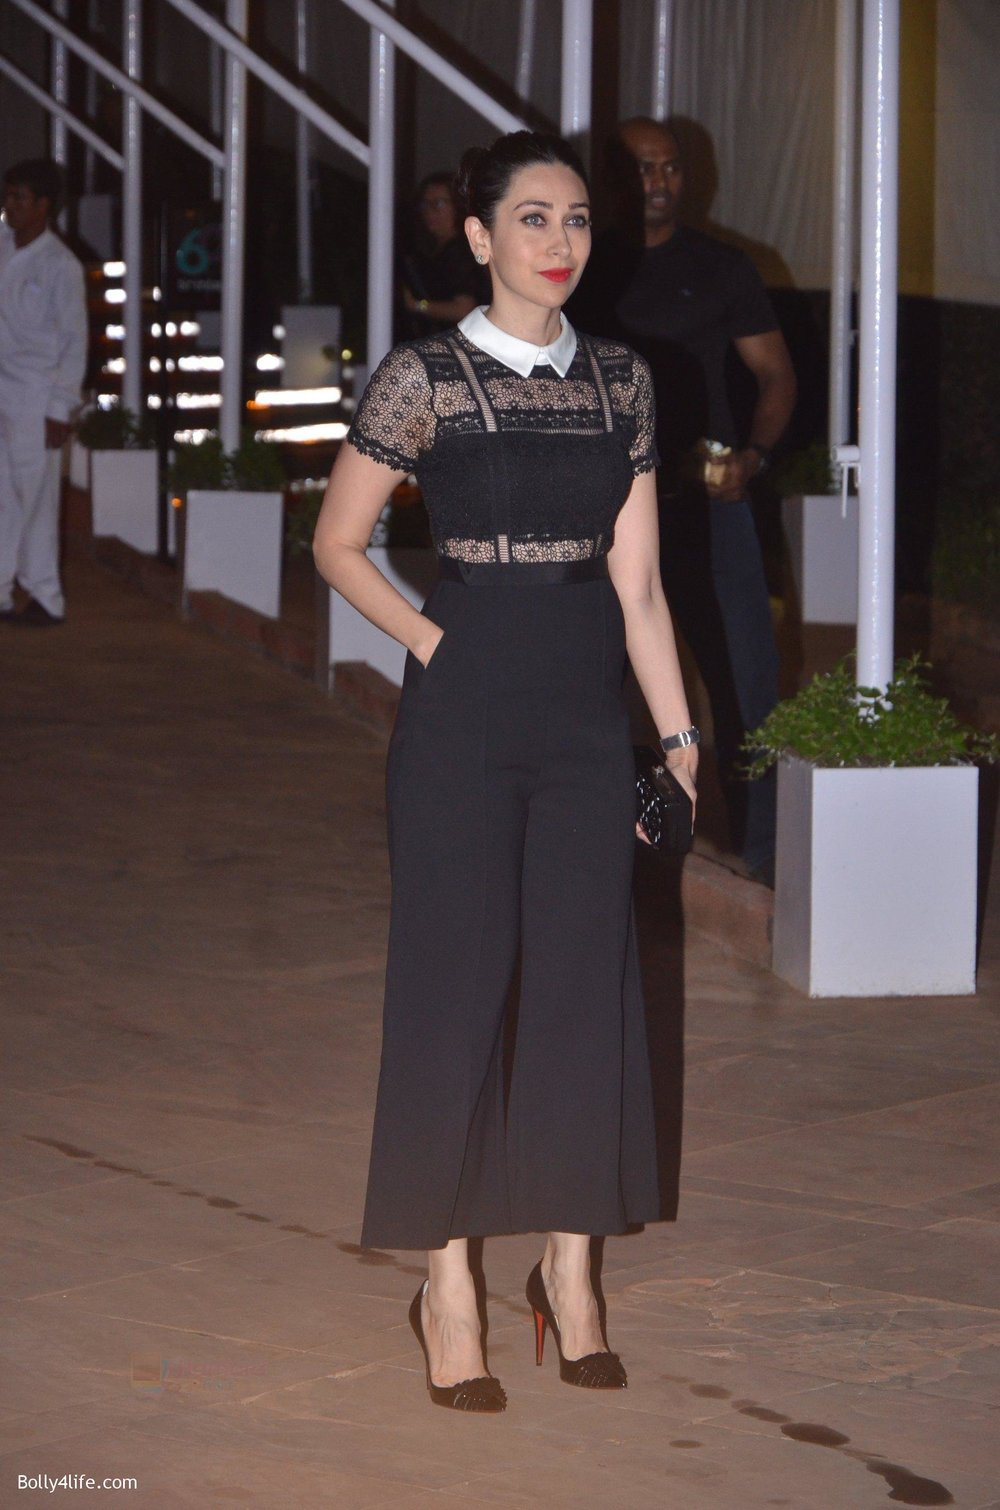 Karisma-Kapoor-at-Reema-jain-bday-party-in-Amadeus-NCPA-on-28th-Sept-2016-745.jpg